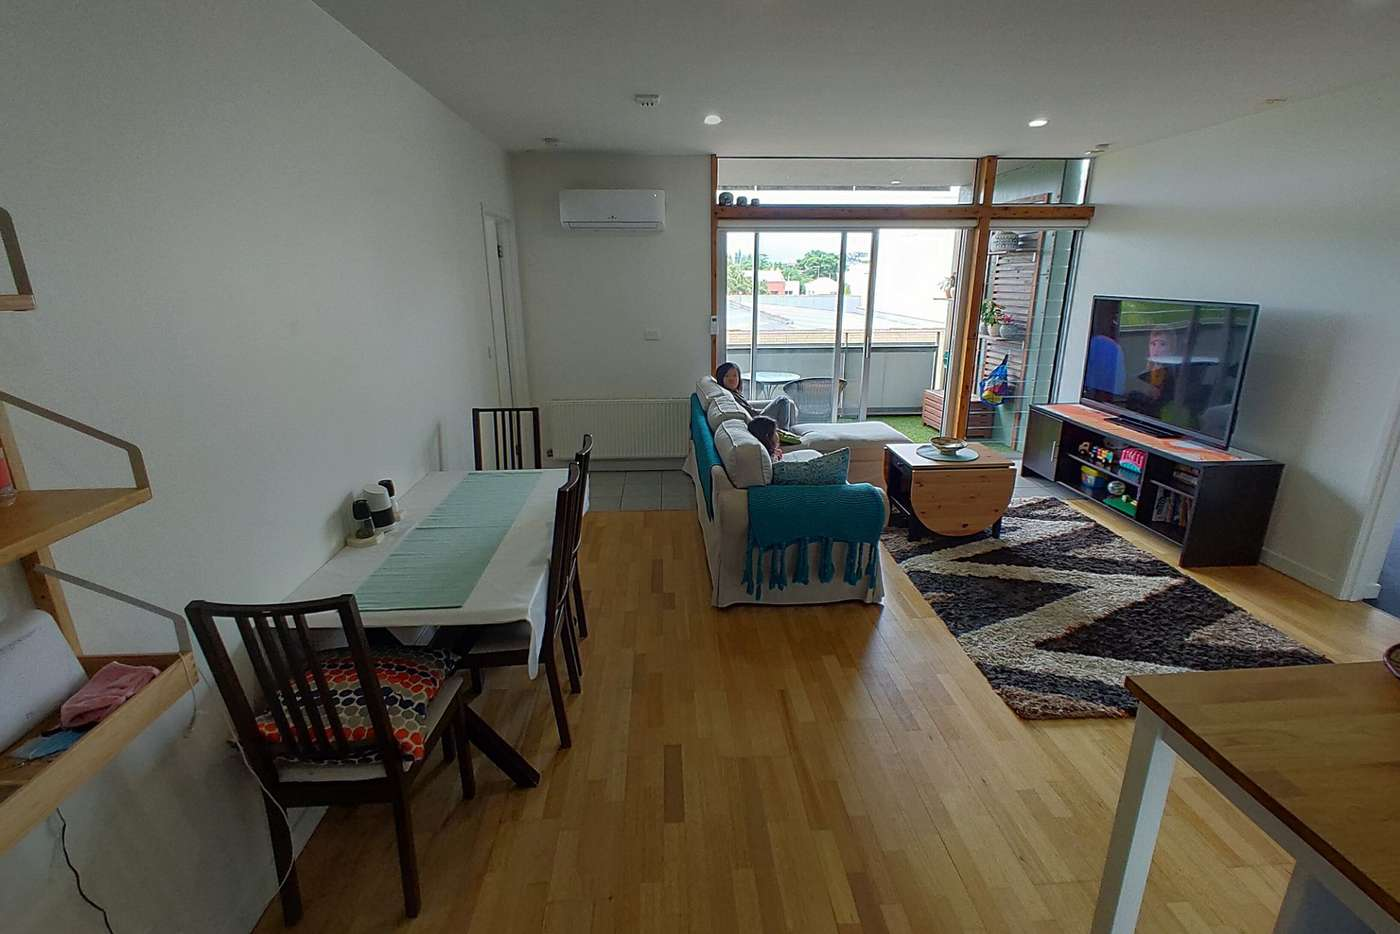 Main view of Homely unit listing, 407/7 Greeves St, St Kilda VIC 3182